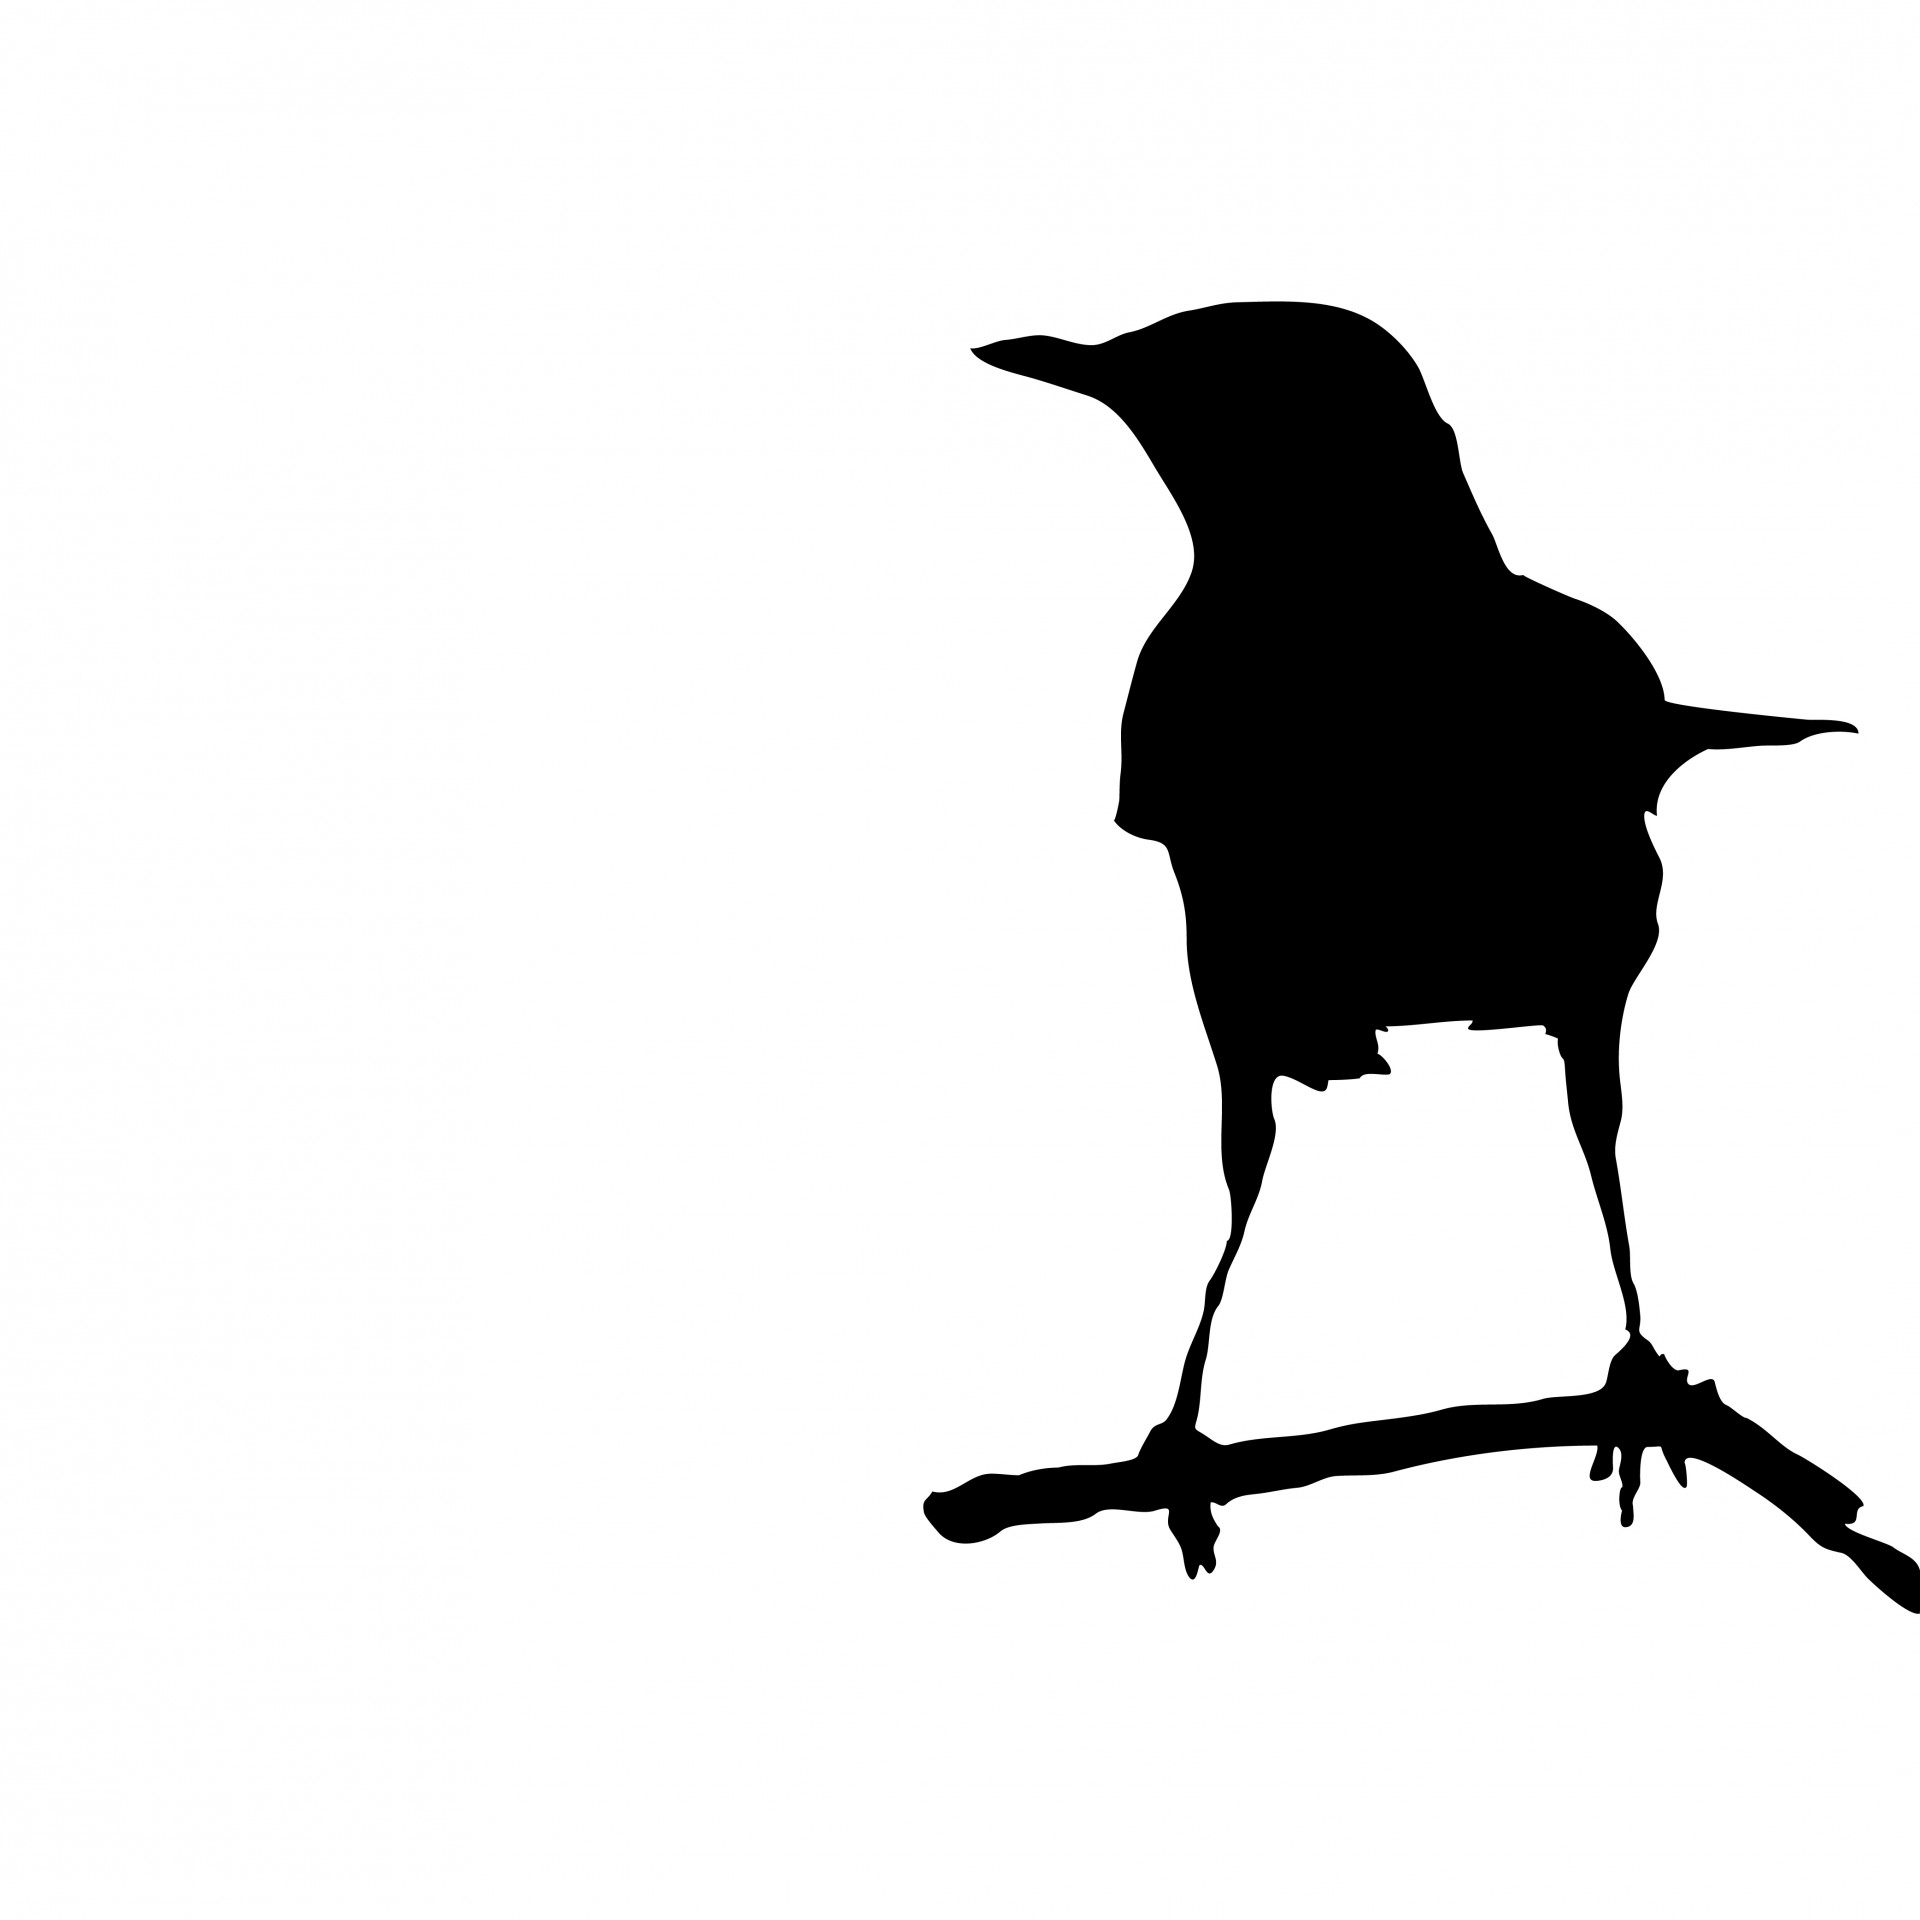 1920x1920 Bird Sitting On A Branch Silhouette